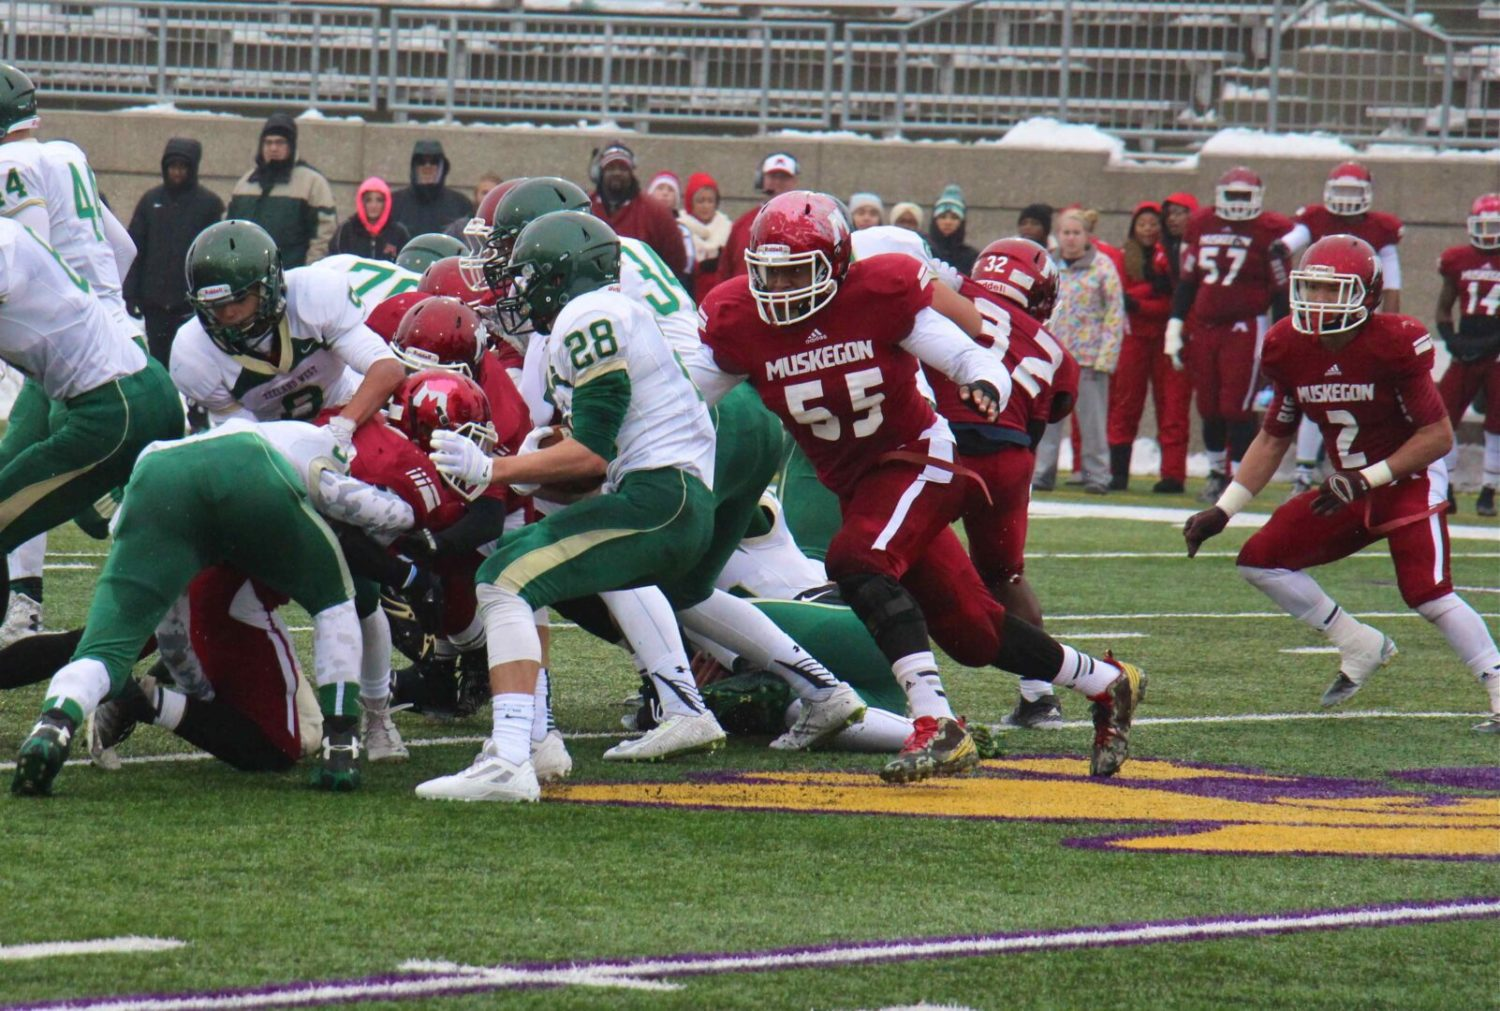 Big Reds headed back to Ford Field for the third year in a row after beating Zeeland West 20-0